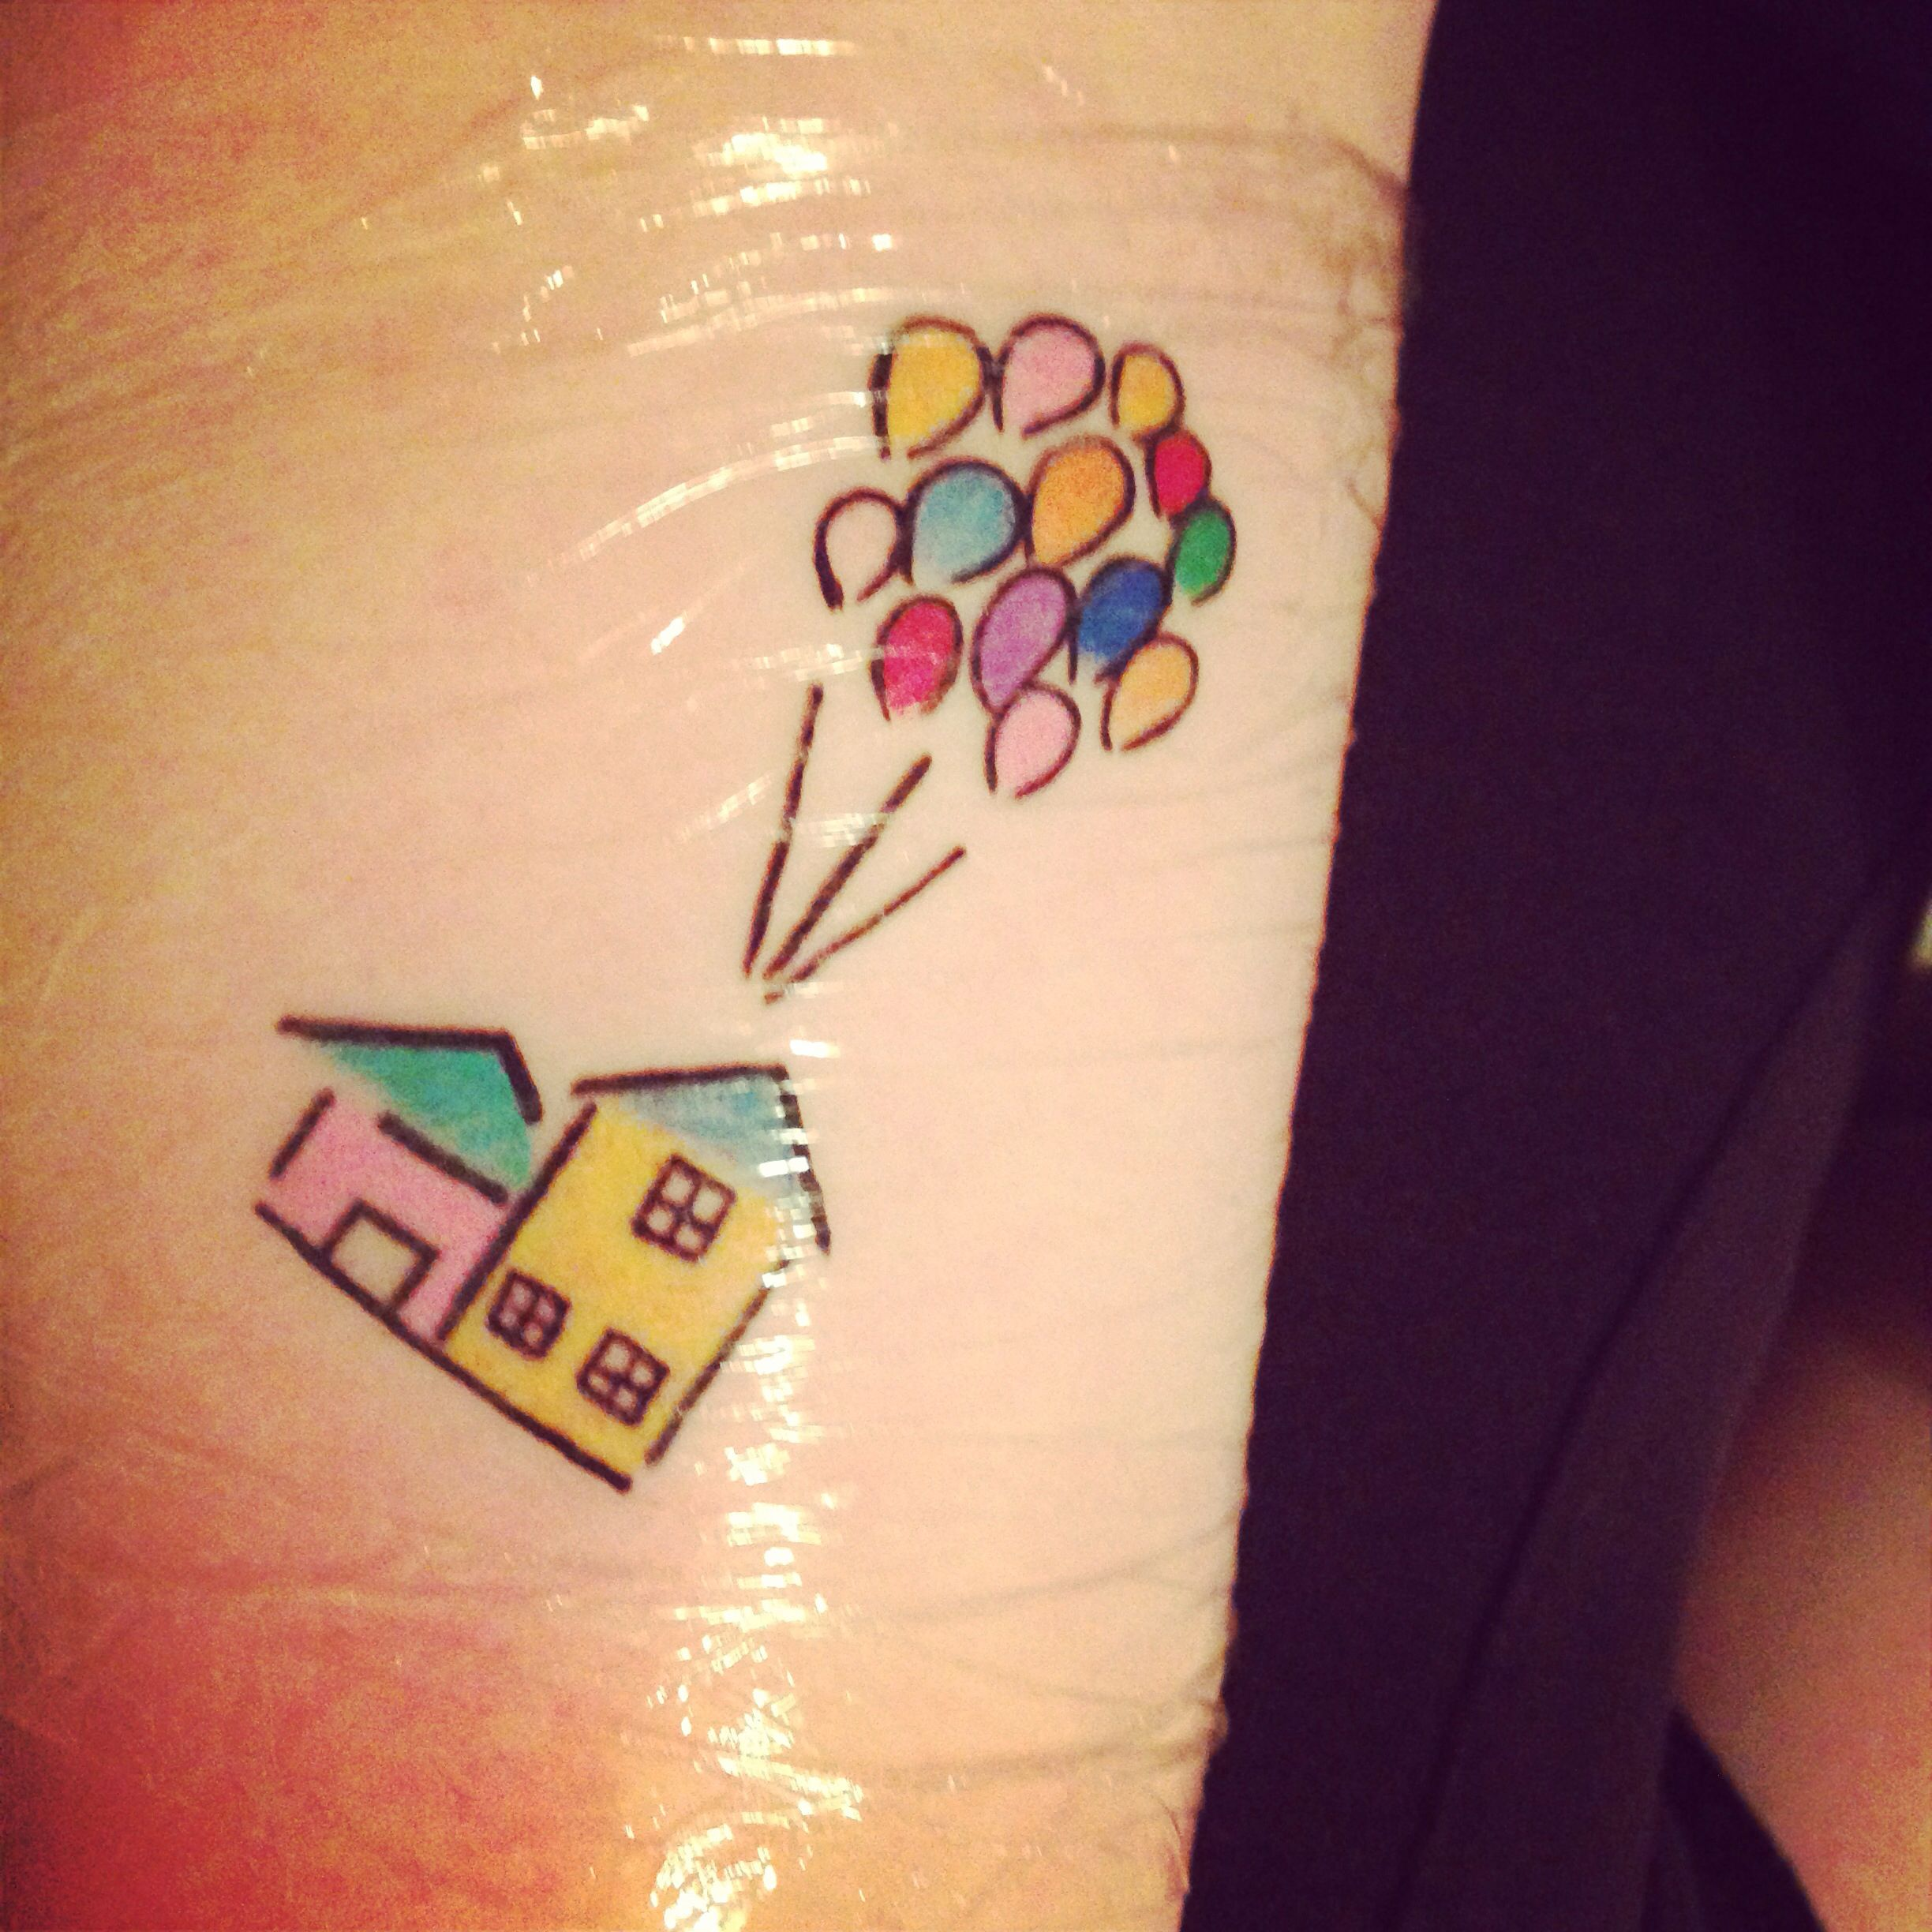 Up House Balloons Newest Tattoo The House And Balloons From Up Done By Anthony At